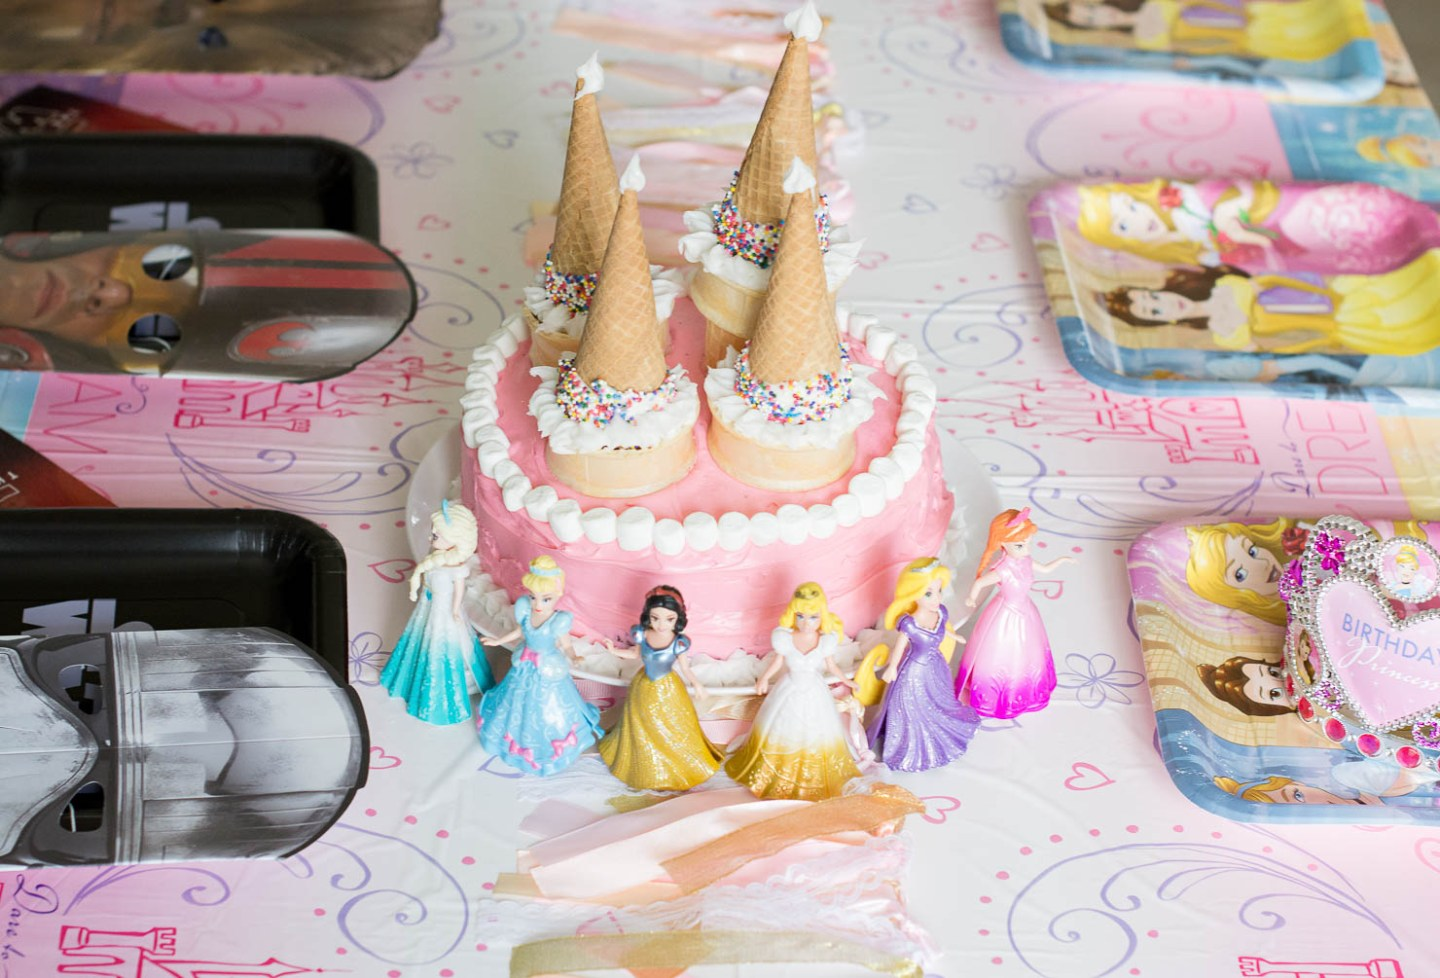 american greetings at target, decorating for a princess birthday party, an easy princess cake for your little princess, star wars the force awakens birthday decorations